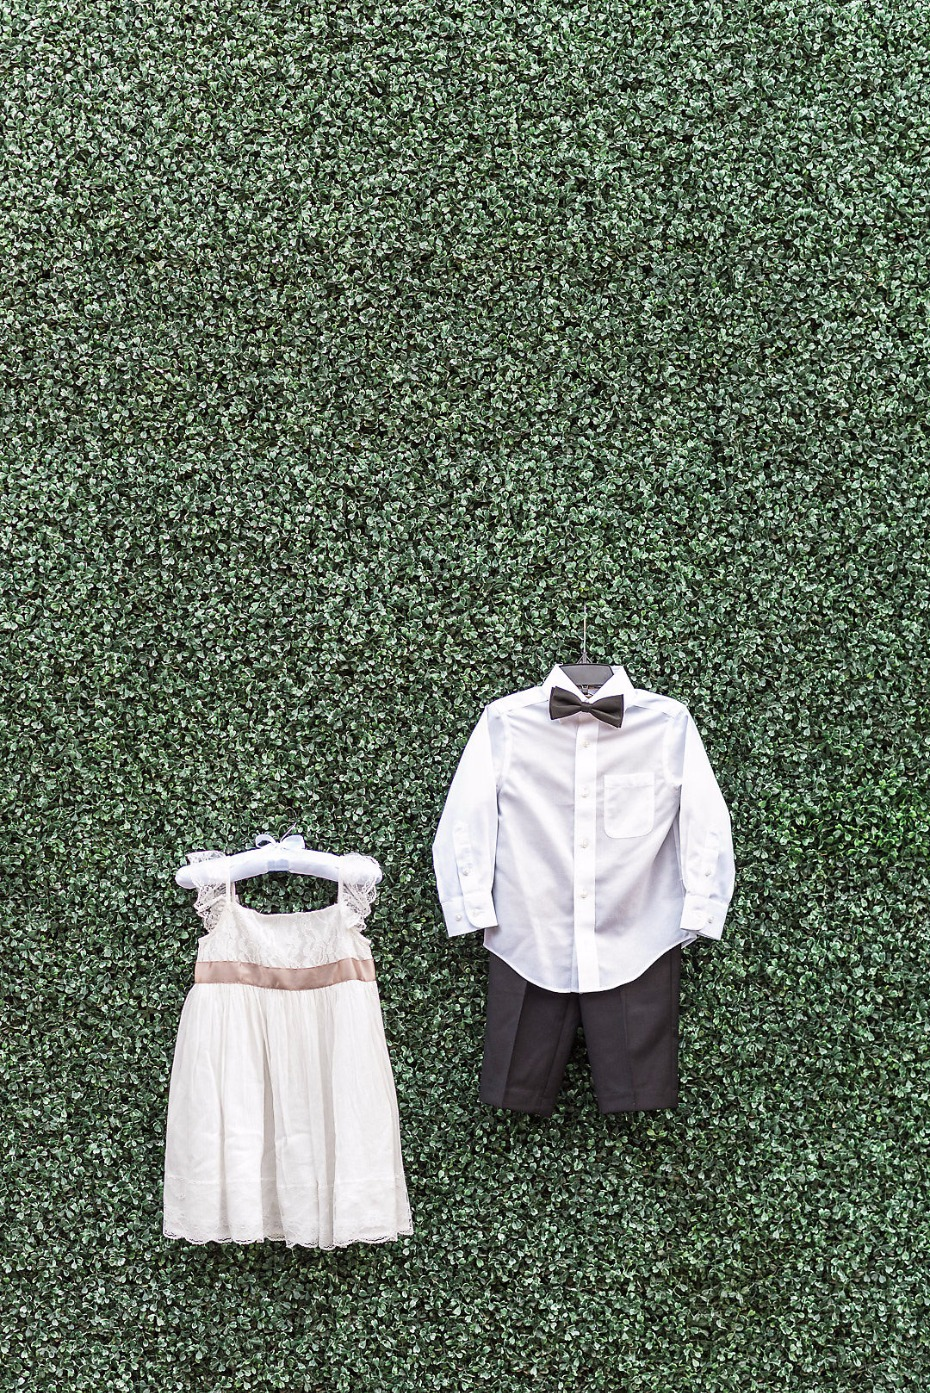 Ring bearer and flower girl dress